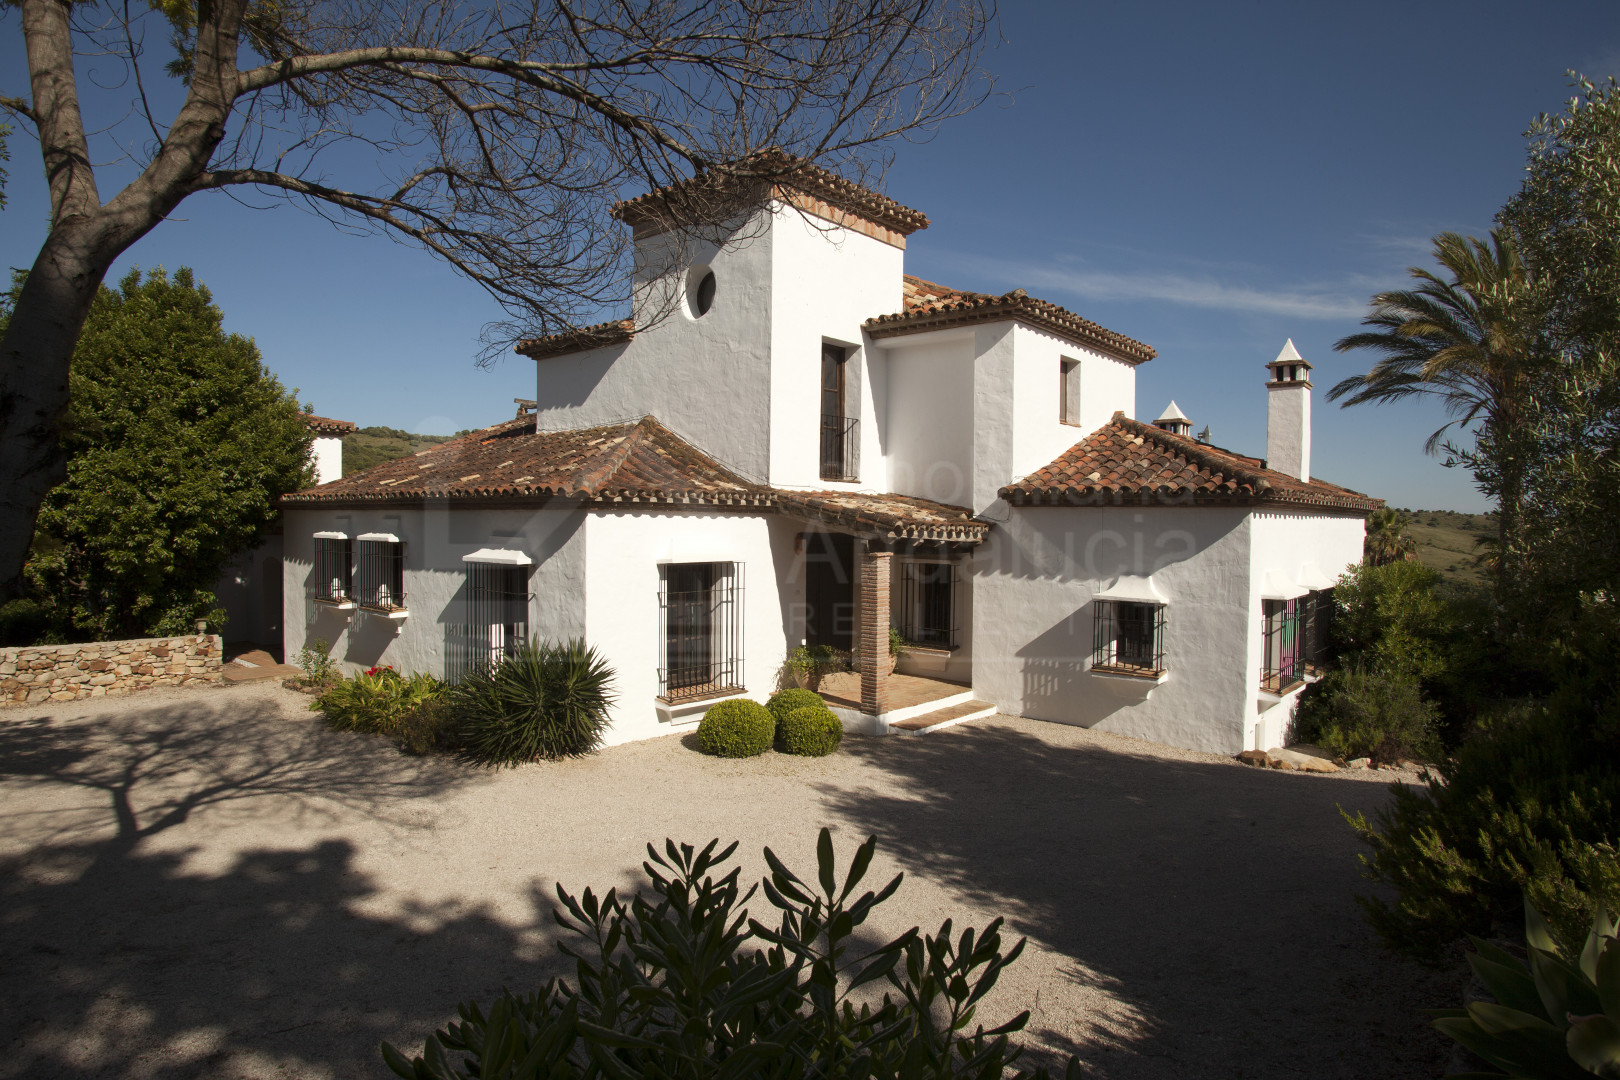 Gorgeous 5 bedroom country house for sale in private estate in Gaucin